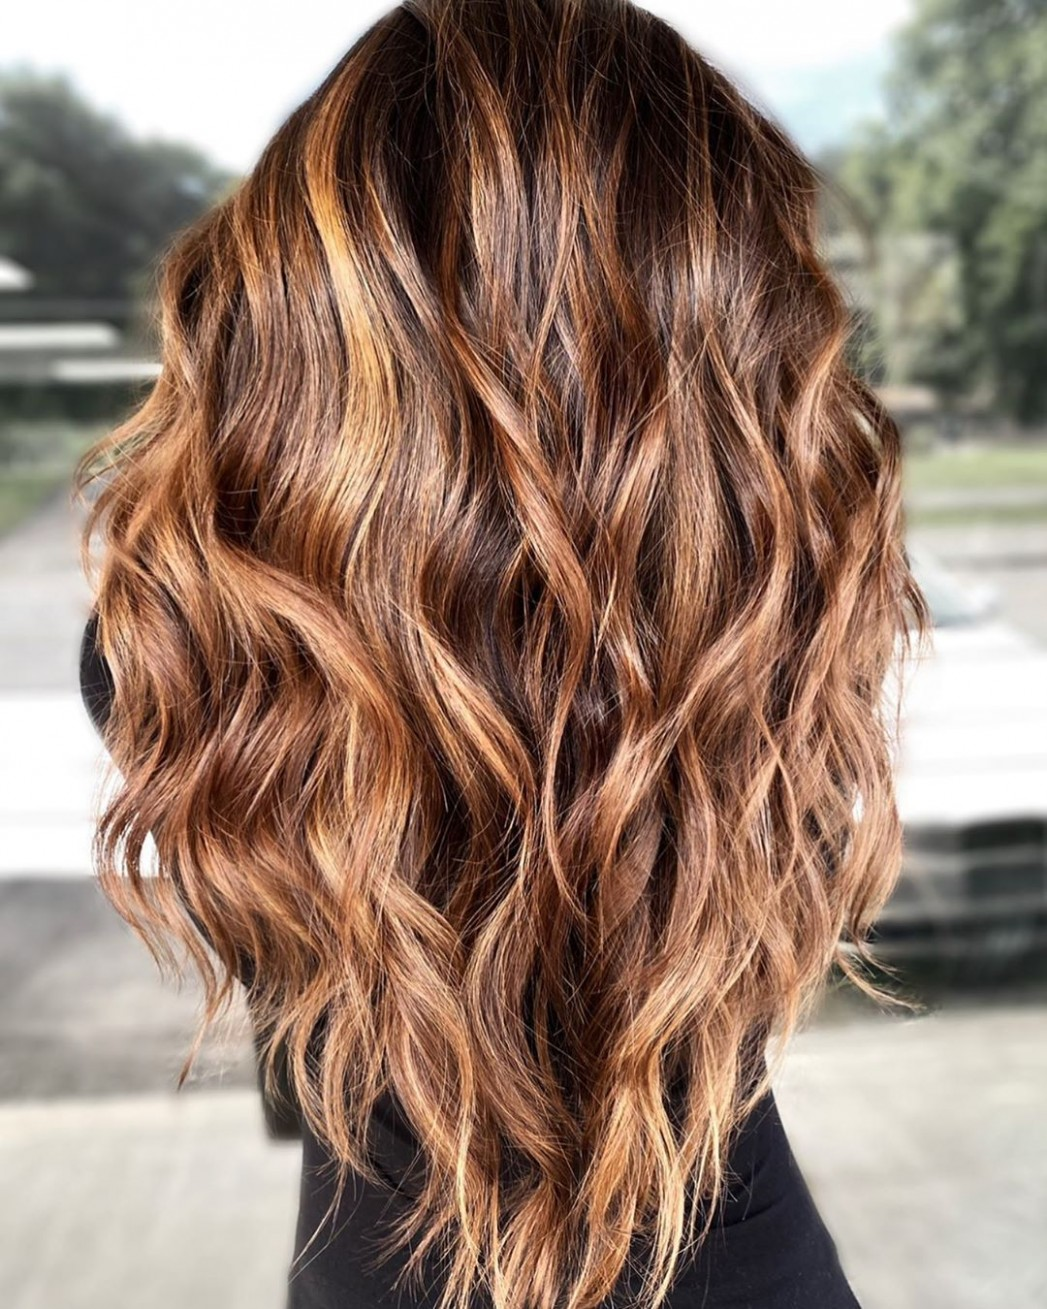 8 Cute Layered Hairstyles And Cuts For Long Hair In 8 Layers In Hair Long